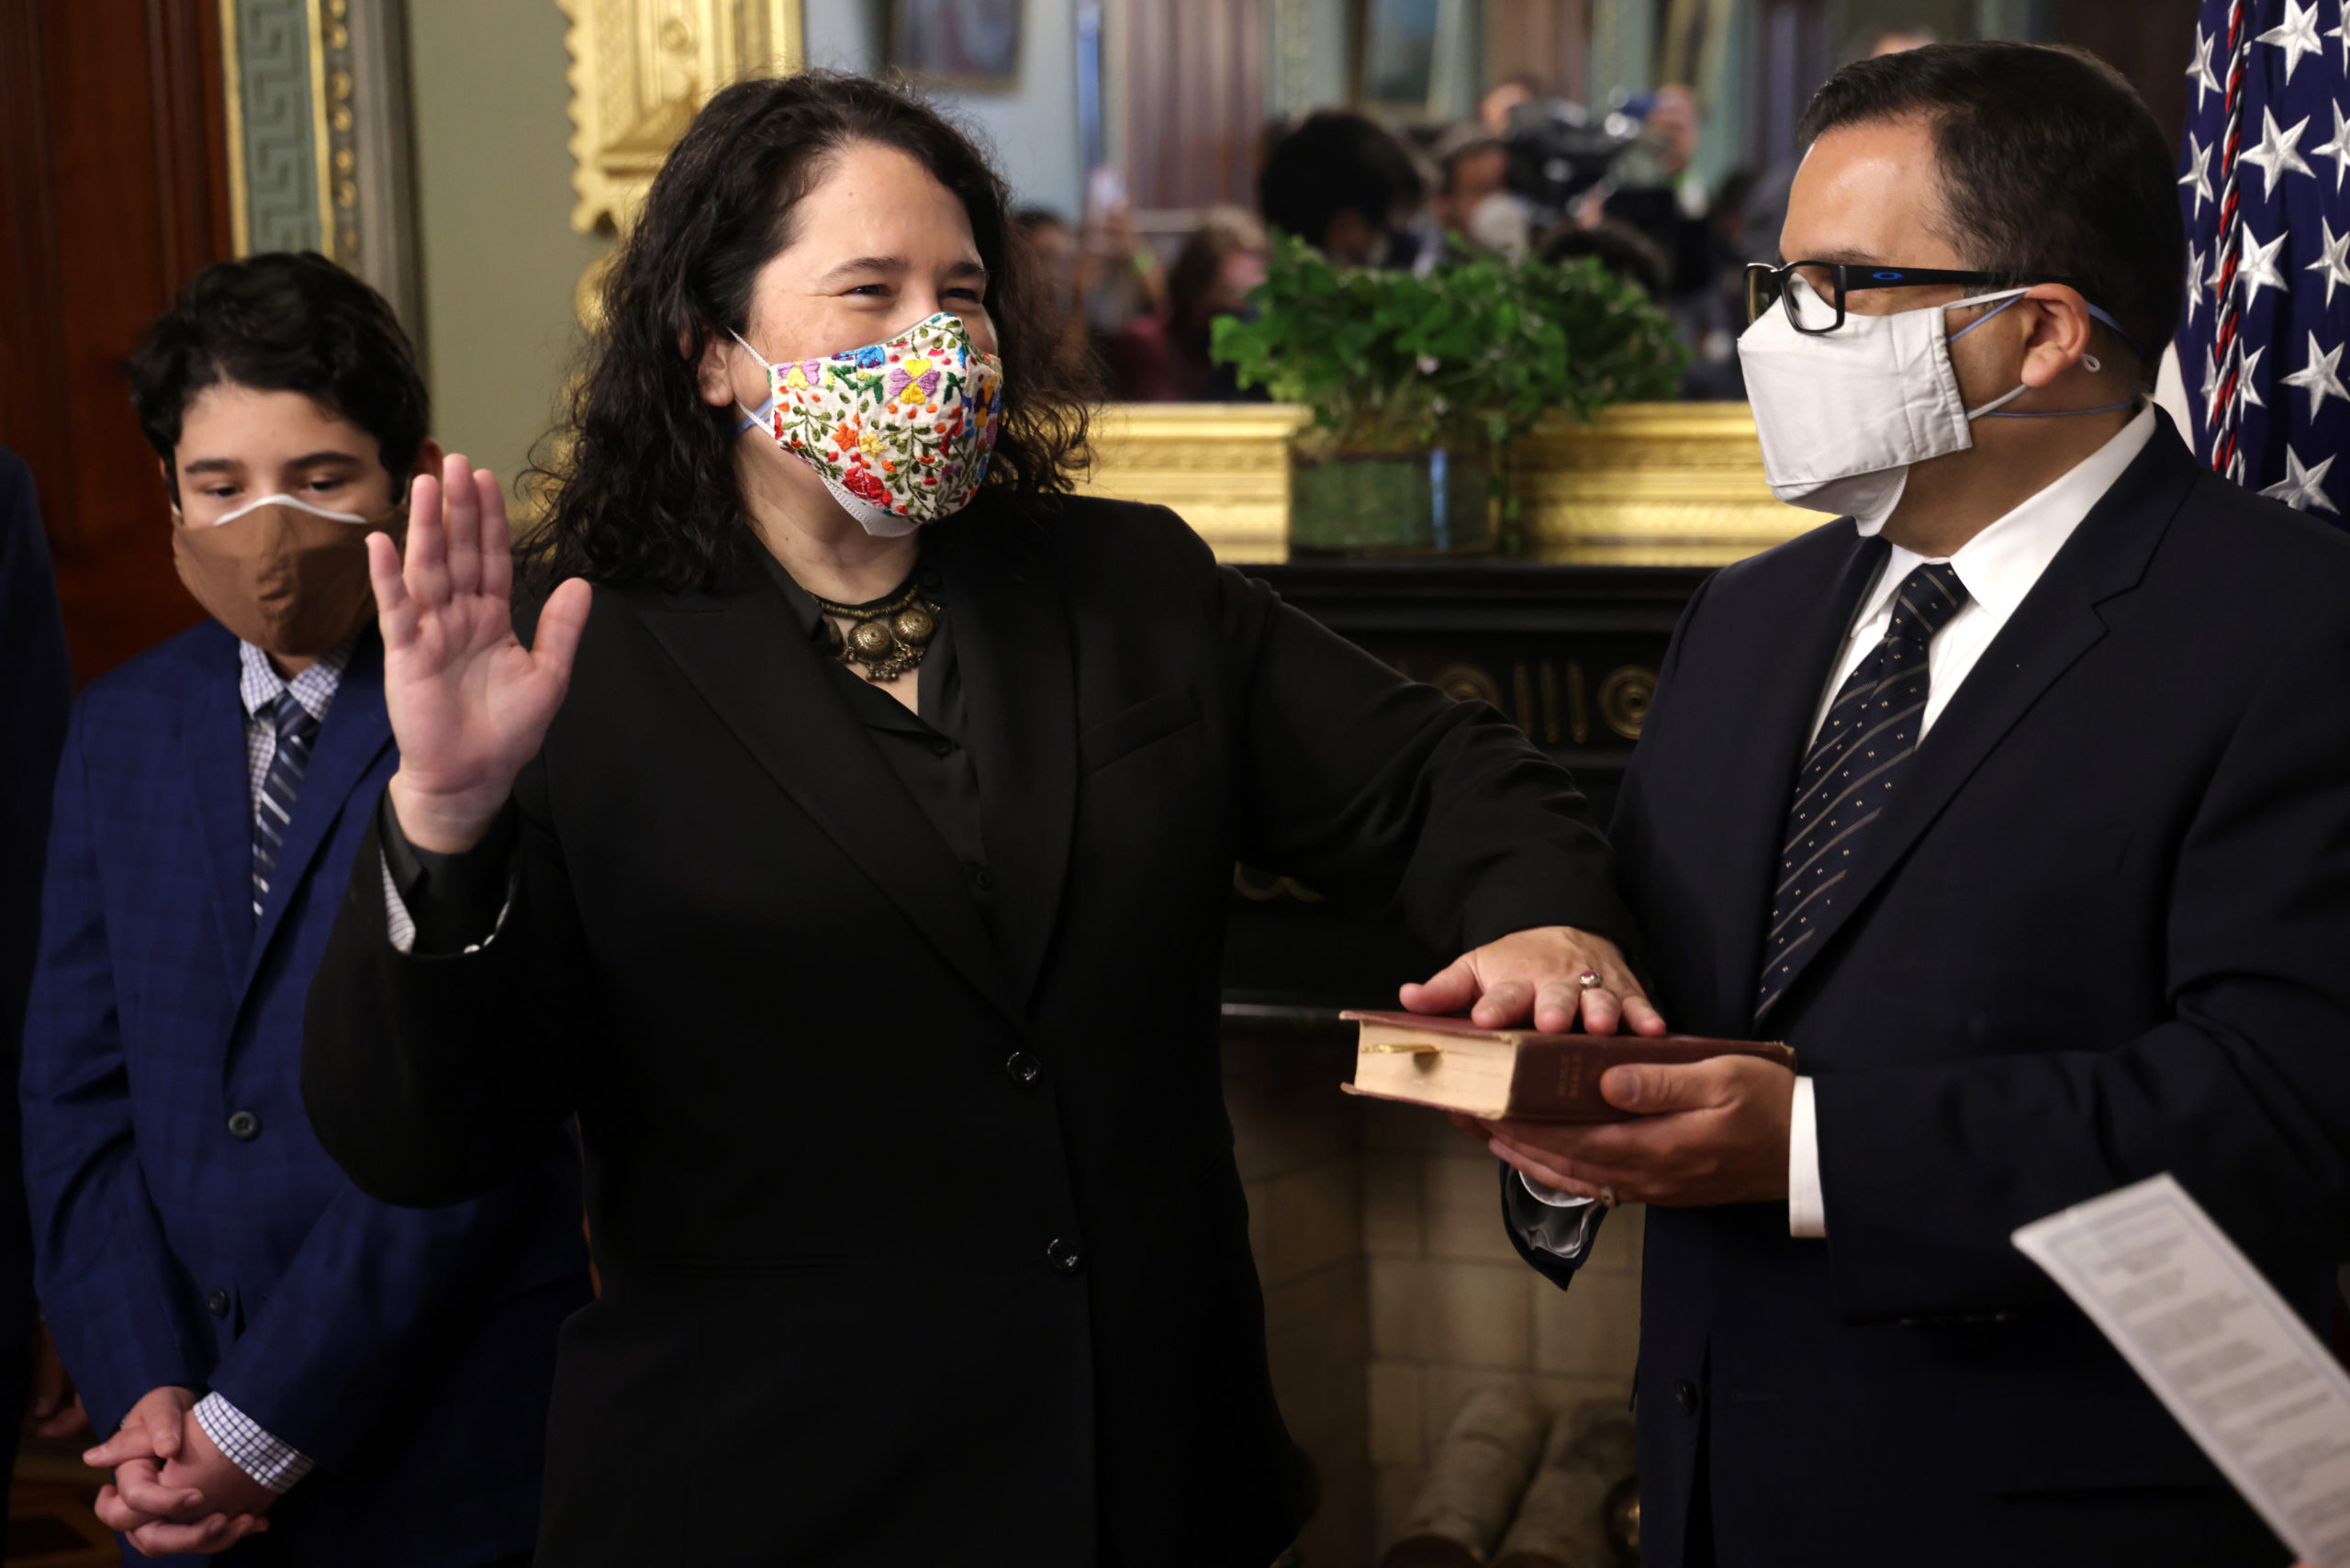 Isabella Casillas Guzman is sworn in as administrator of the Small Business Administration on Monday. (Alex Wong/Getty Images)